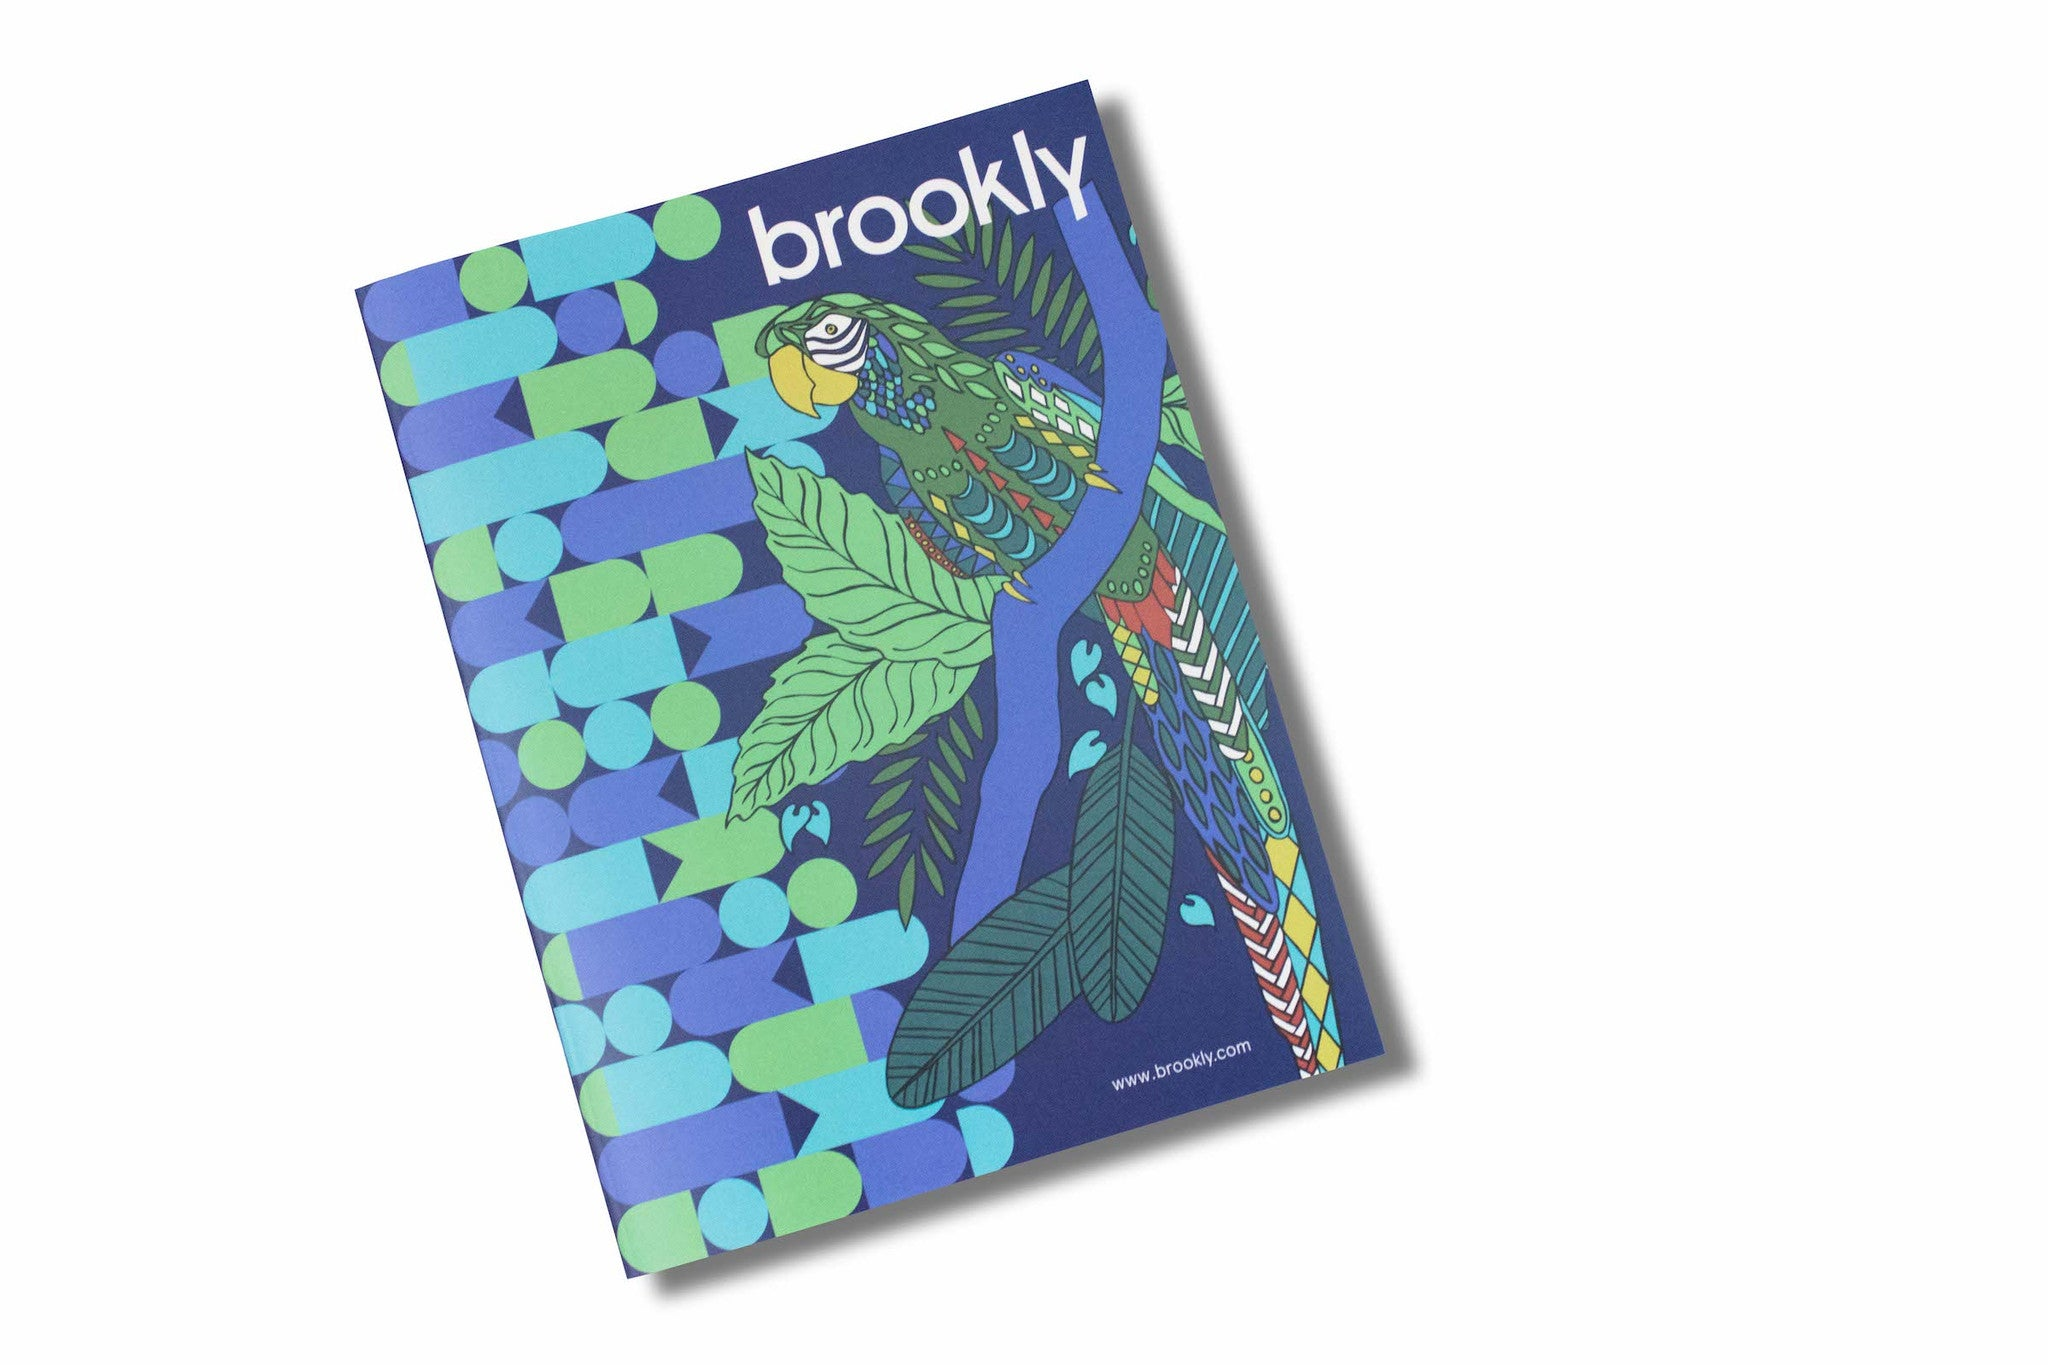 Two Pack - Brookly Coloring Book - Get 25% off and FREE Shipping!